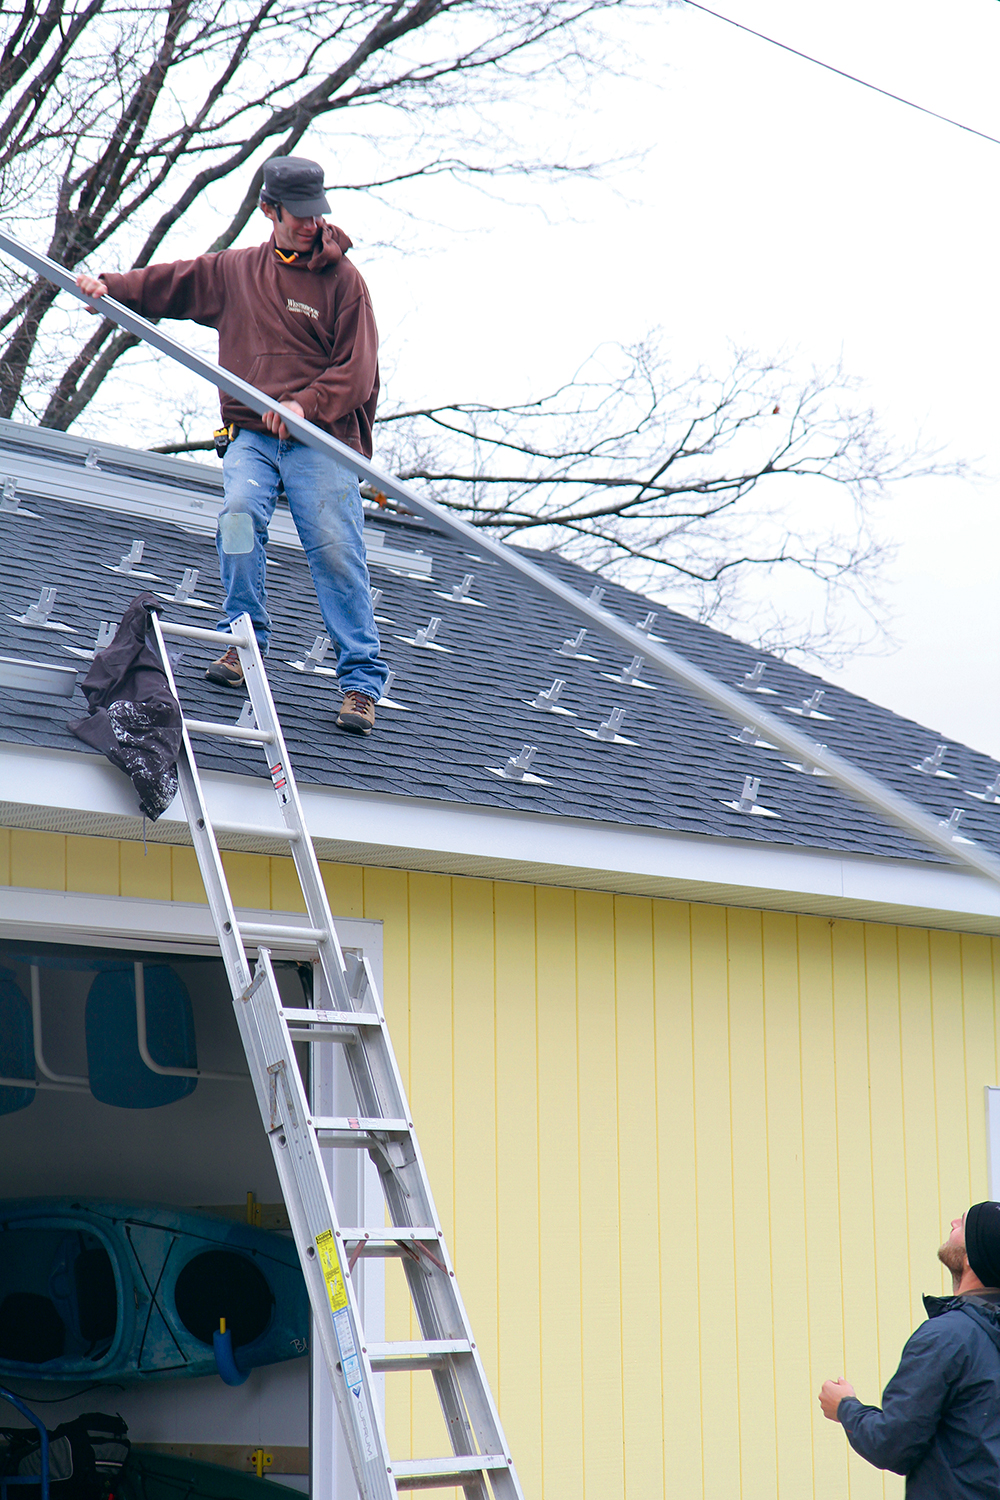 Frankfort Shines Benzie Shines Groundwork Shines Dave Gardner contractor Benzonia Frankfort solar panels Groundwork Center for Resilient Communities Jim Dulzo Aubrey Ann Parker Photography The Betsie Current